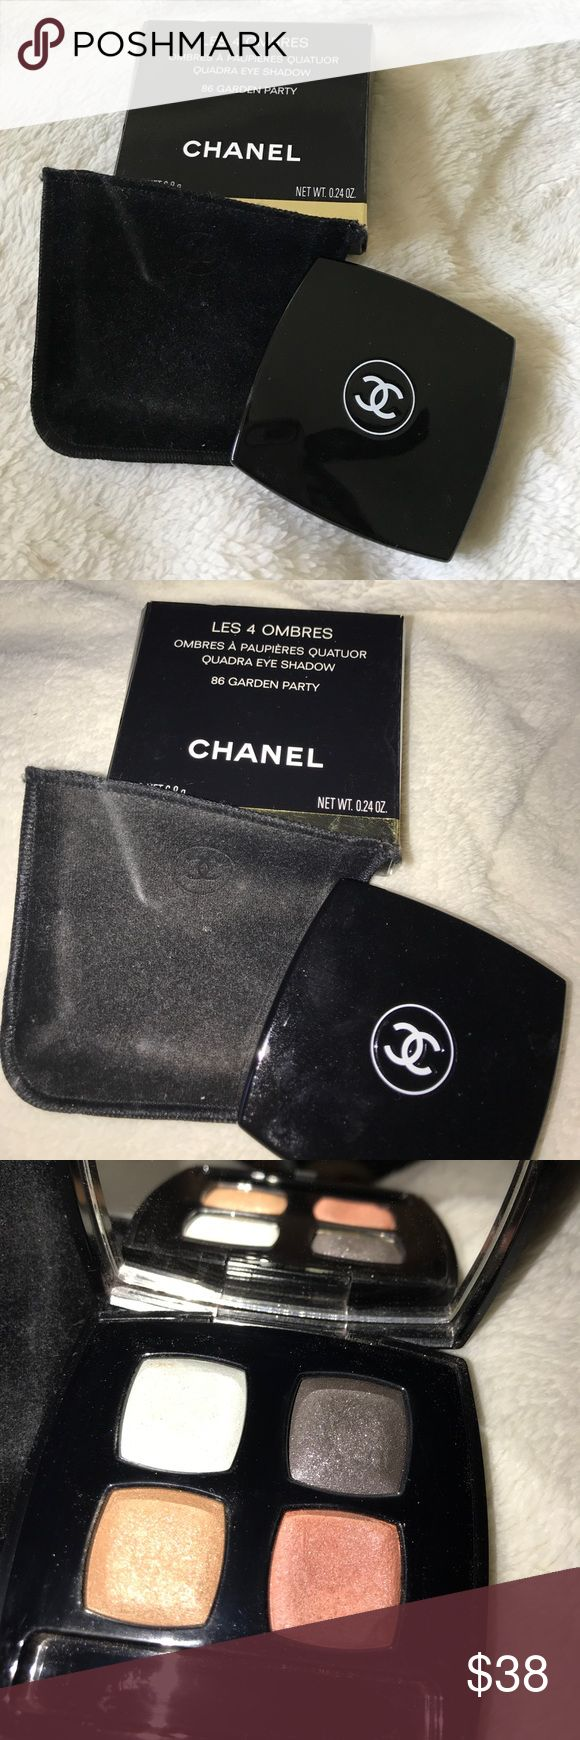 Chanel eyeshadow Lightly used Chanel eyeshadow. ❌If you would like to purchase for a CHEAPER PRICE, please email me kassidyrios@yahoo.com I prefer to do purchases via paypal.❌ CHANEL Makeup Eyeshadow